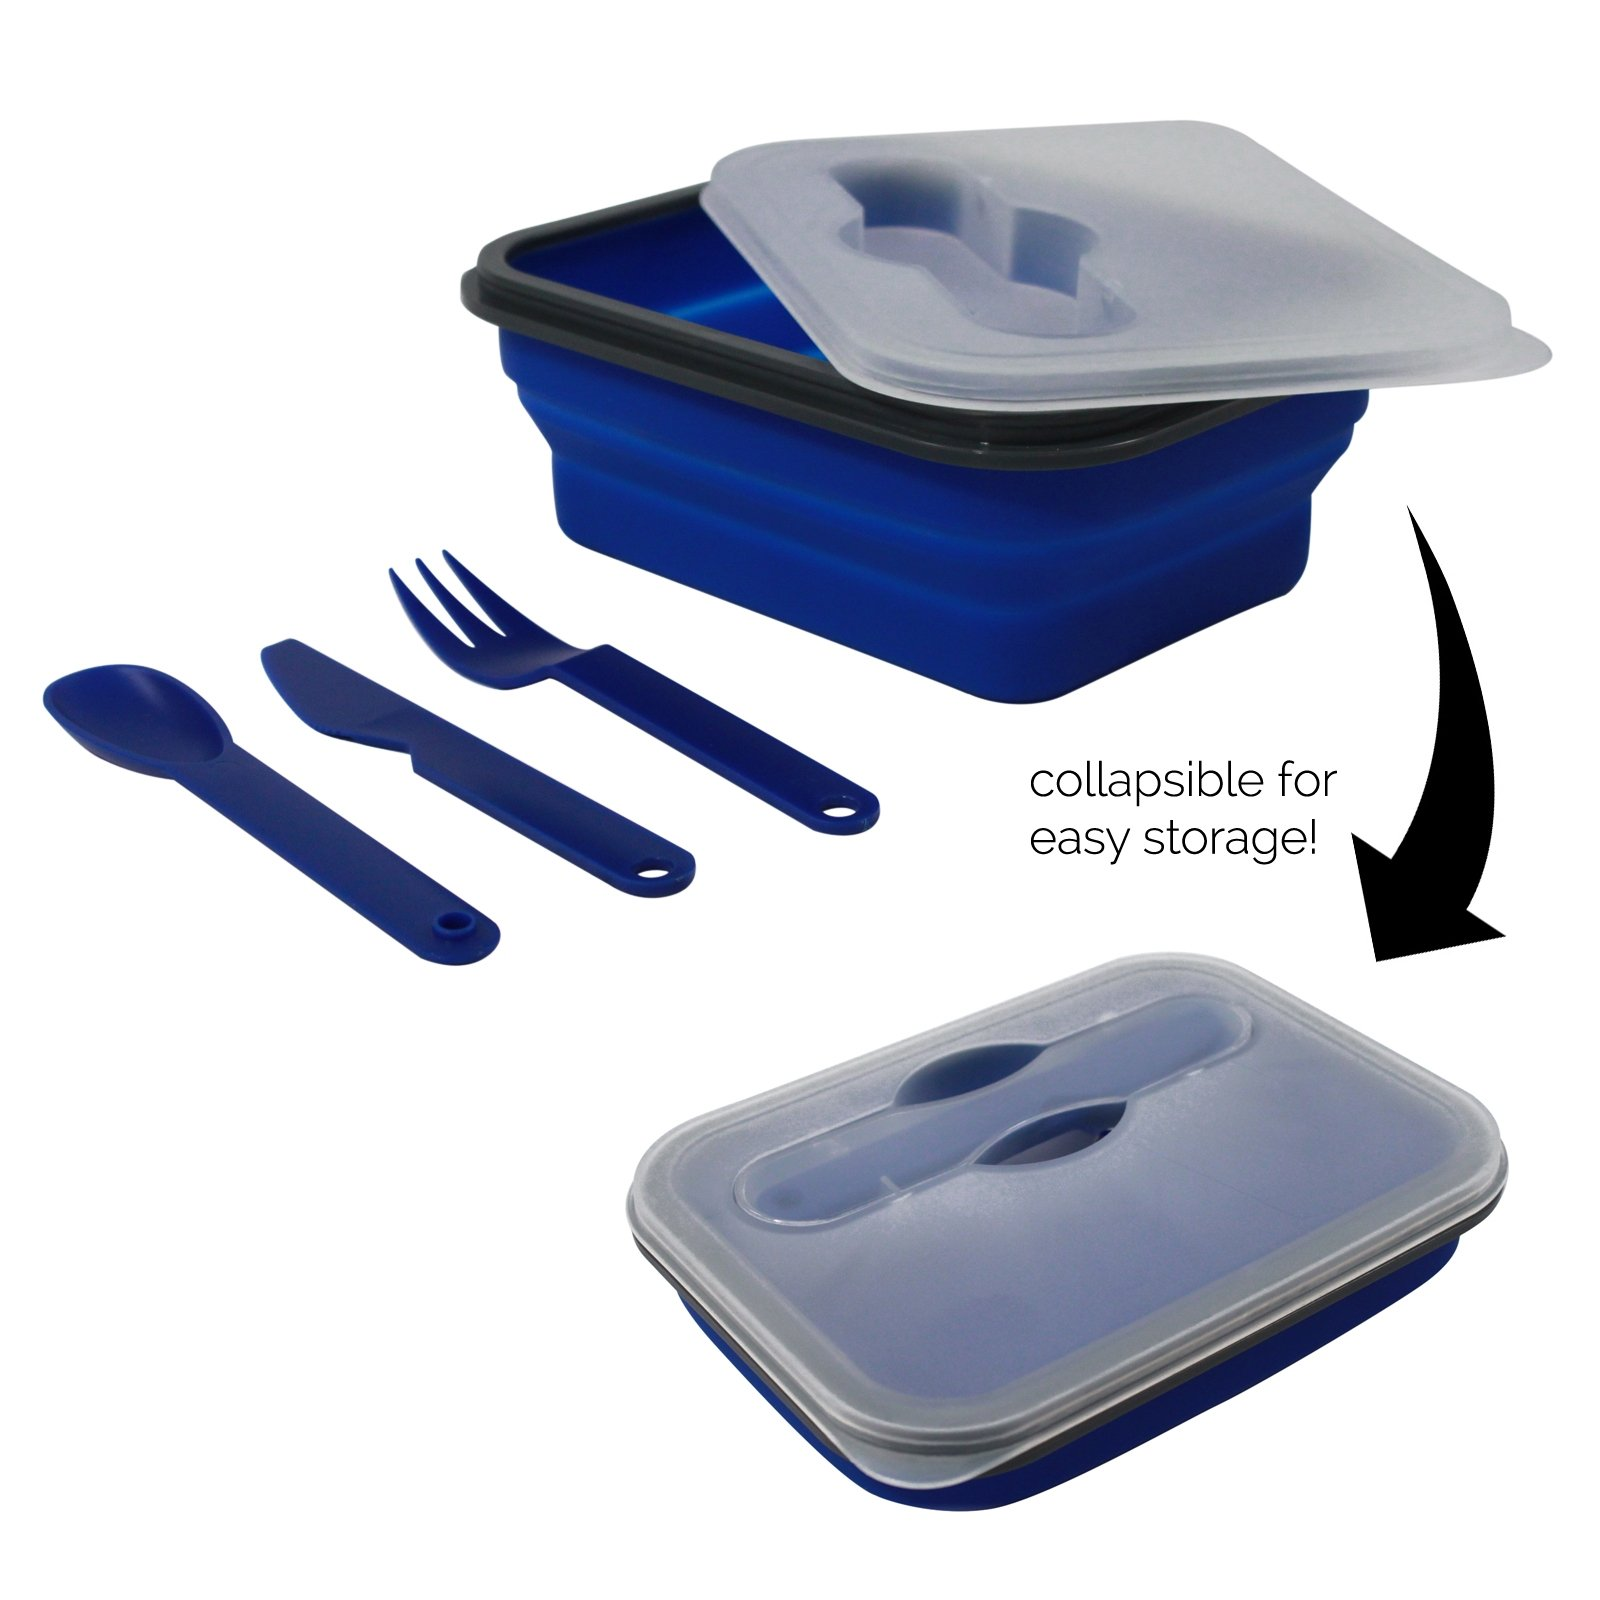 Universal 6.75 x 5 Inch Collapsible Food Storage Container and Utensil Set